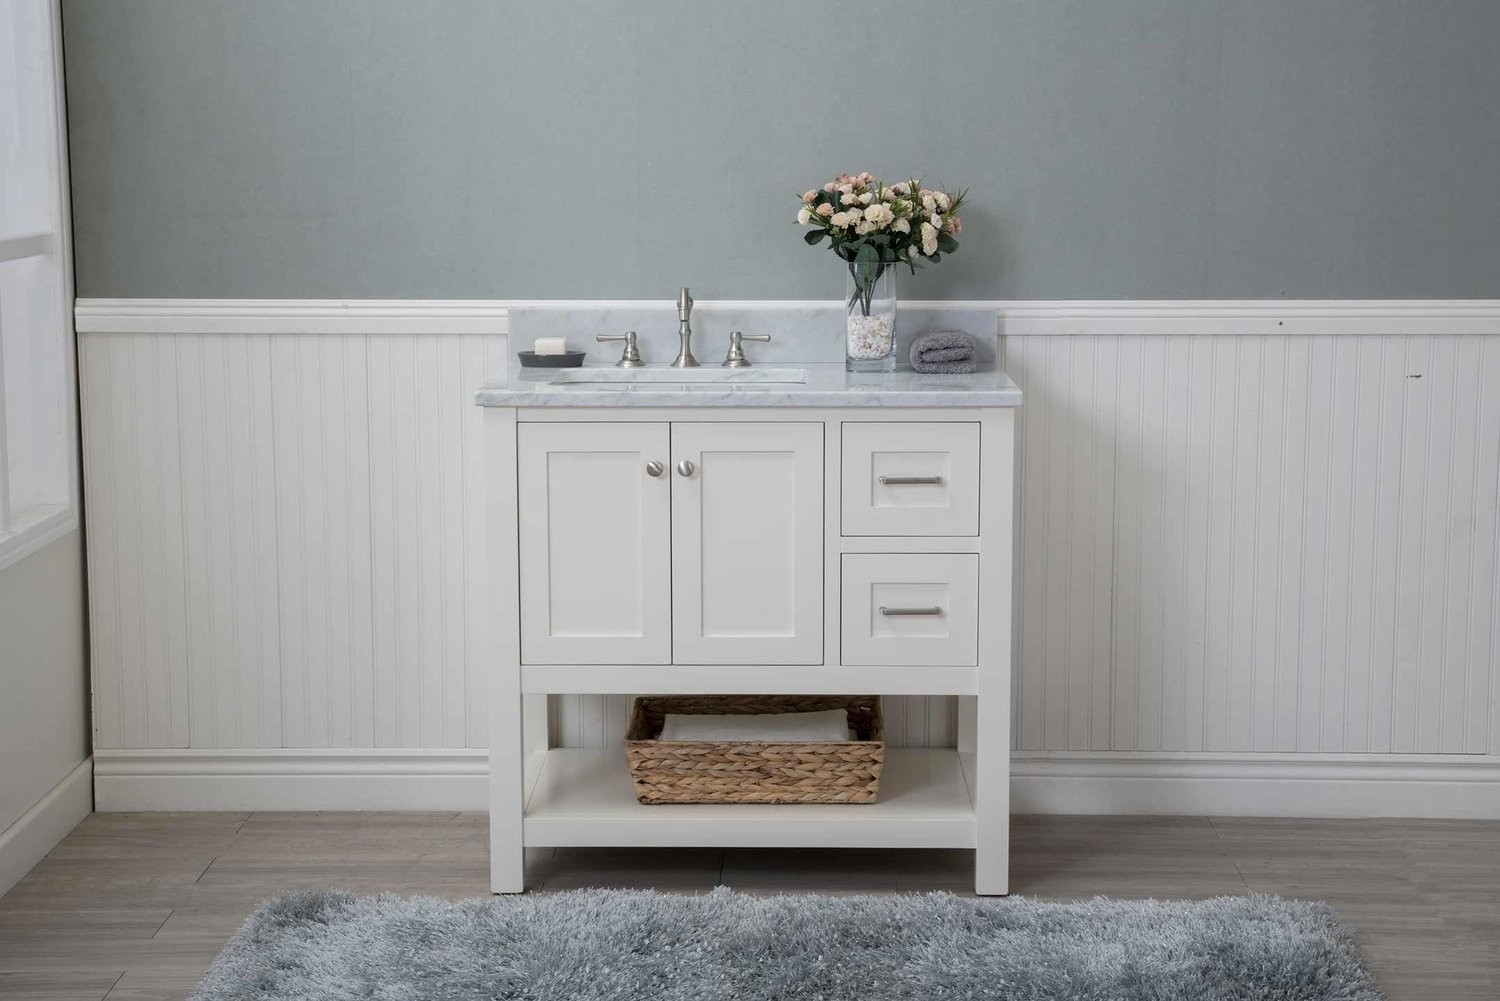 "Epic White Shaker 36"" Bathroom Vanity Open Shelf W/ Marble Top regarding Awesome 36 In Bathroom Vanity With Top"